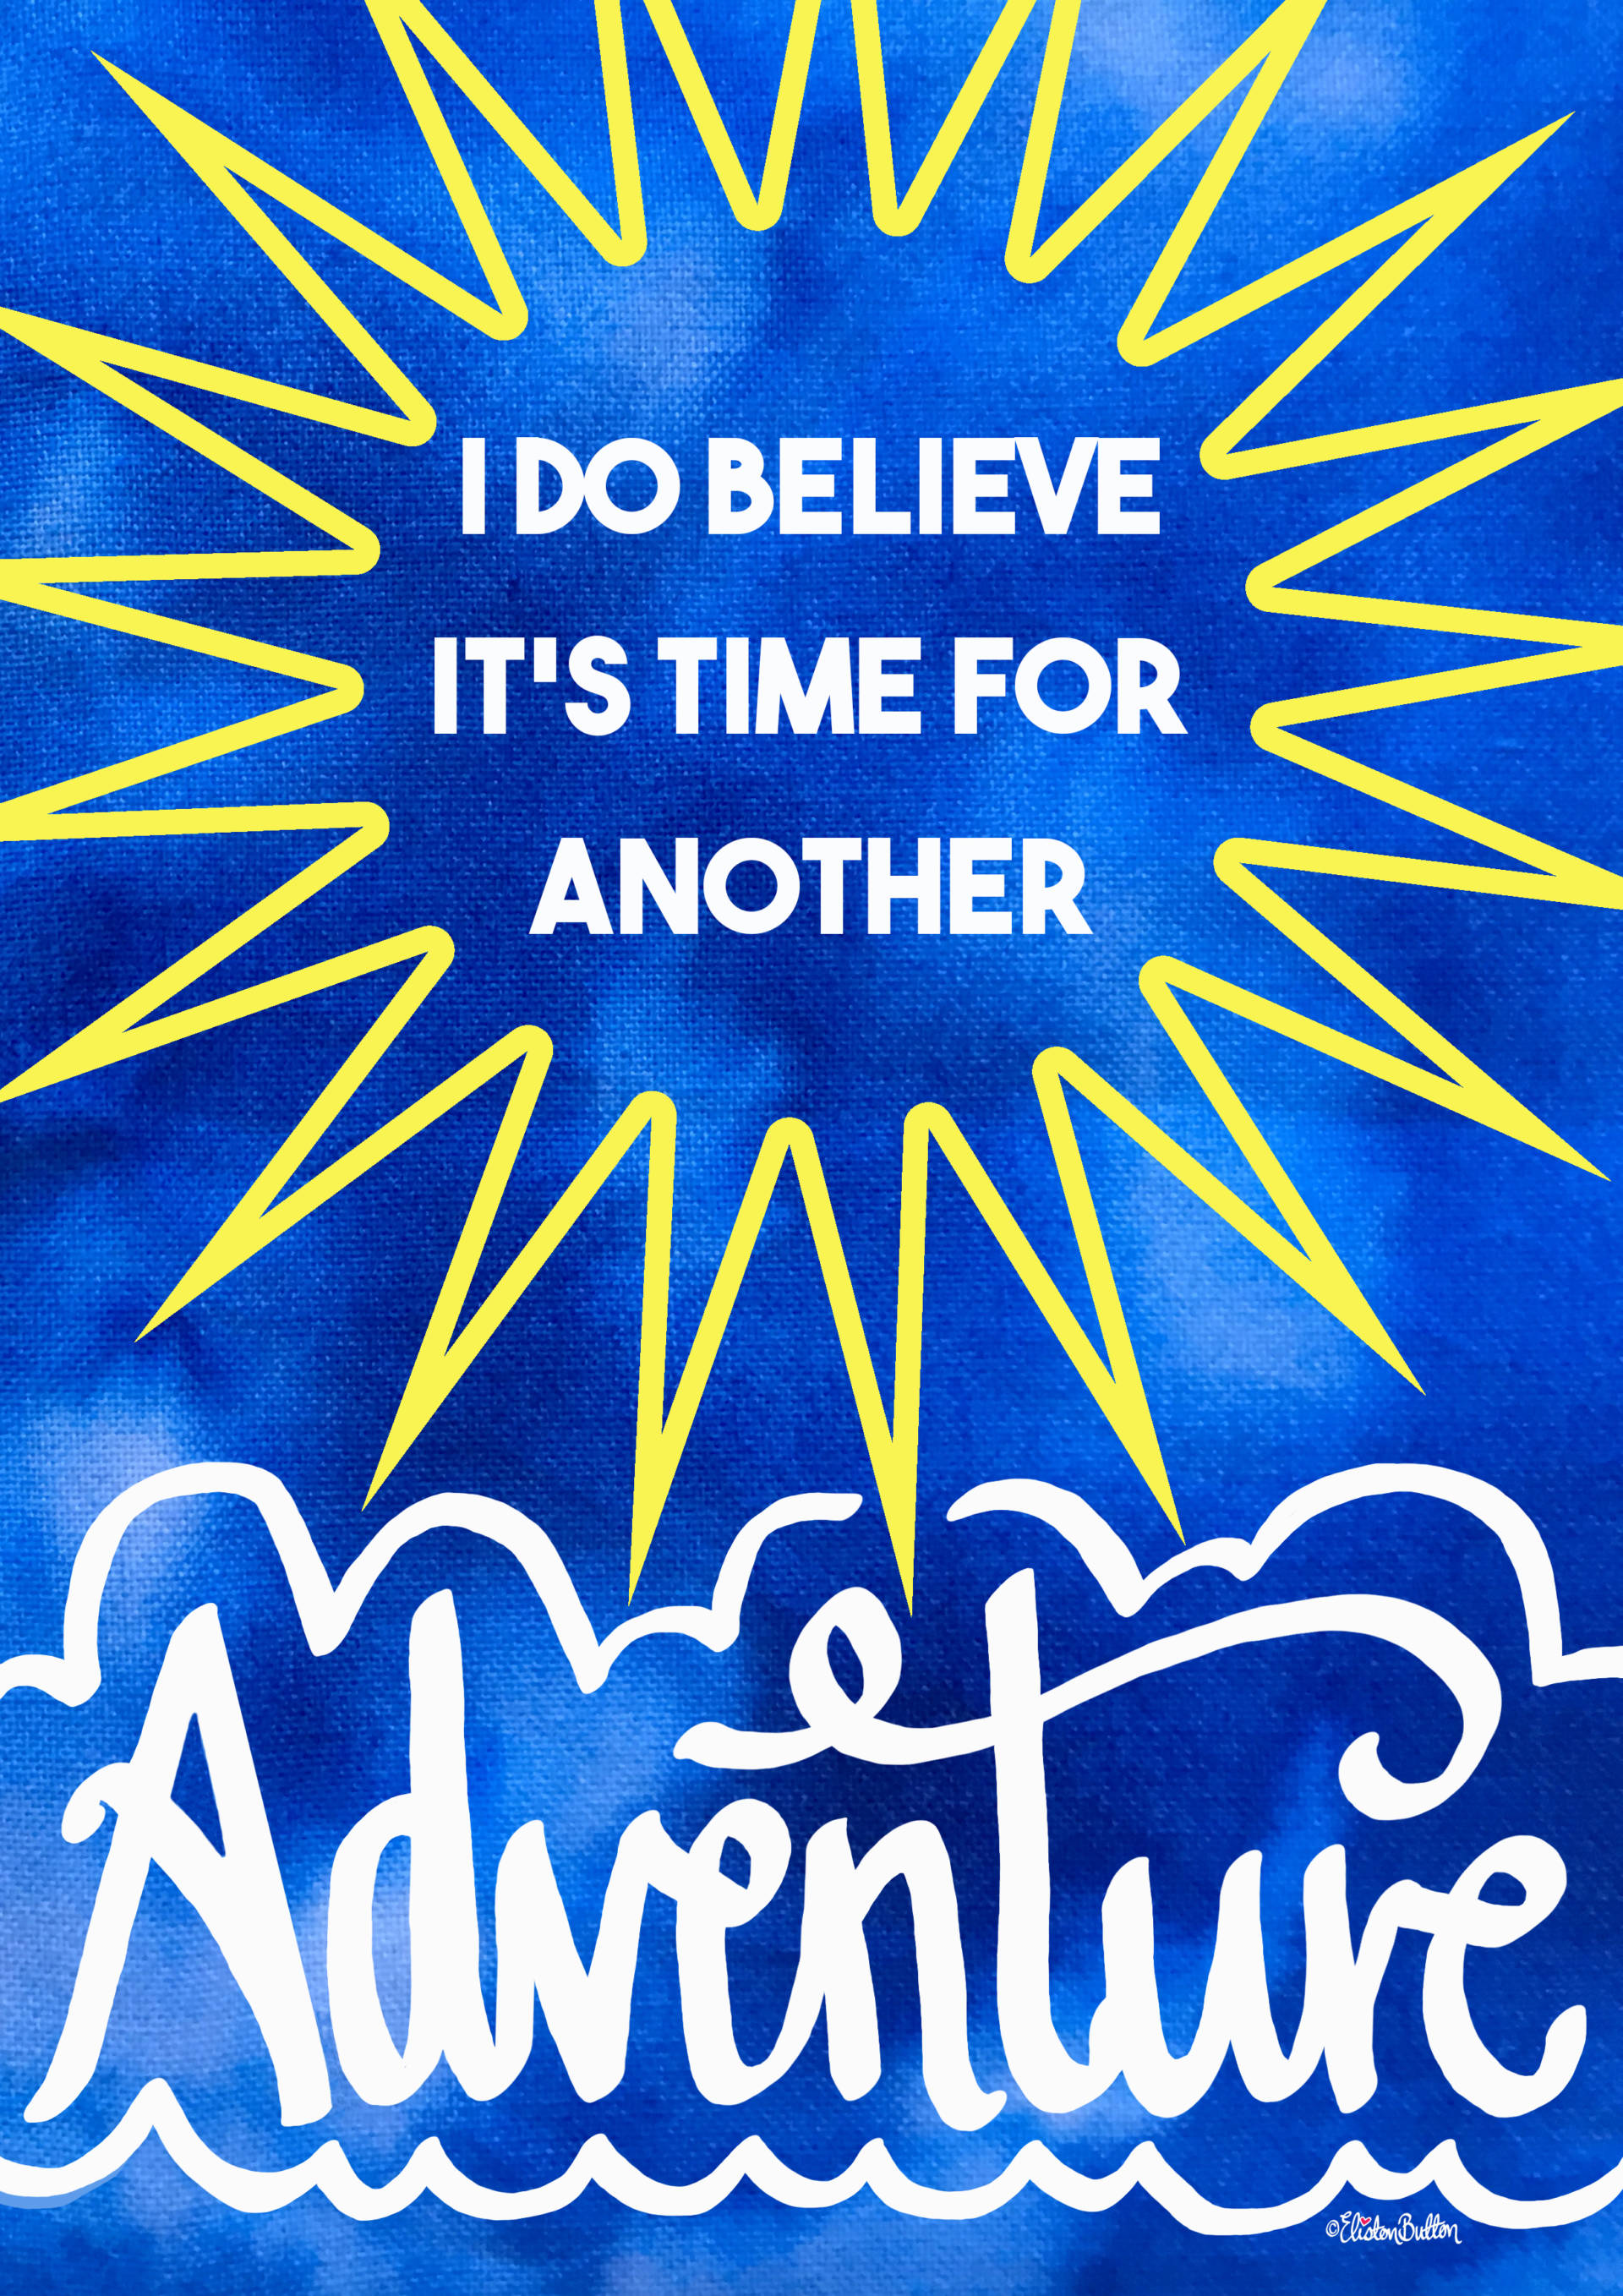 I Do Believe It's Time For Another Adventure Illustrated and Hand Lettered Quote by Eliston Button - Tie Dye Version - Why It's Okay To Make Mistakes (and a Life Update) at www.elistonbutton.com - Eliston Button - That Crafty Kid – Art, Design, Craft & Adventure.